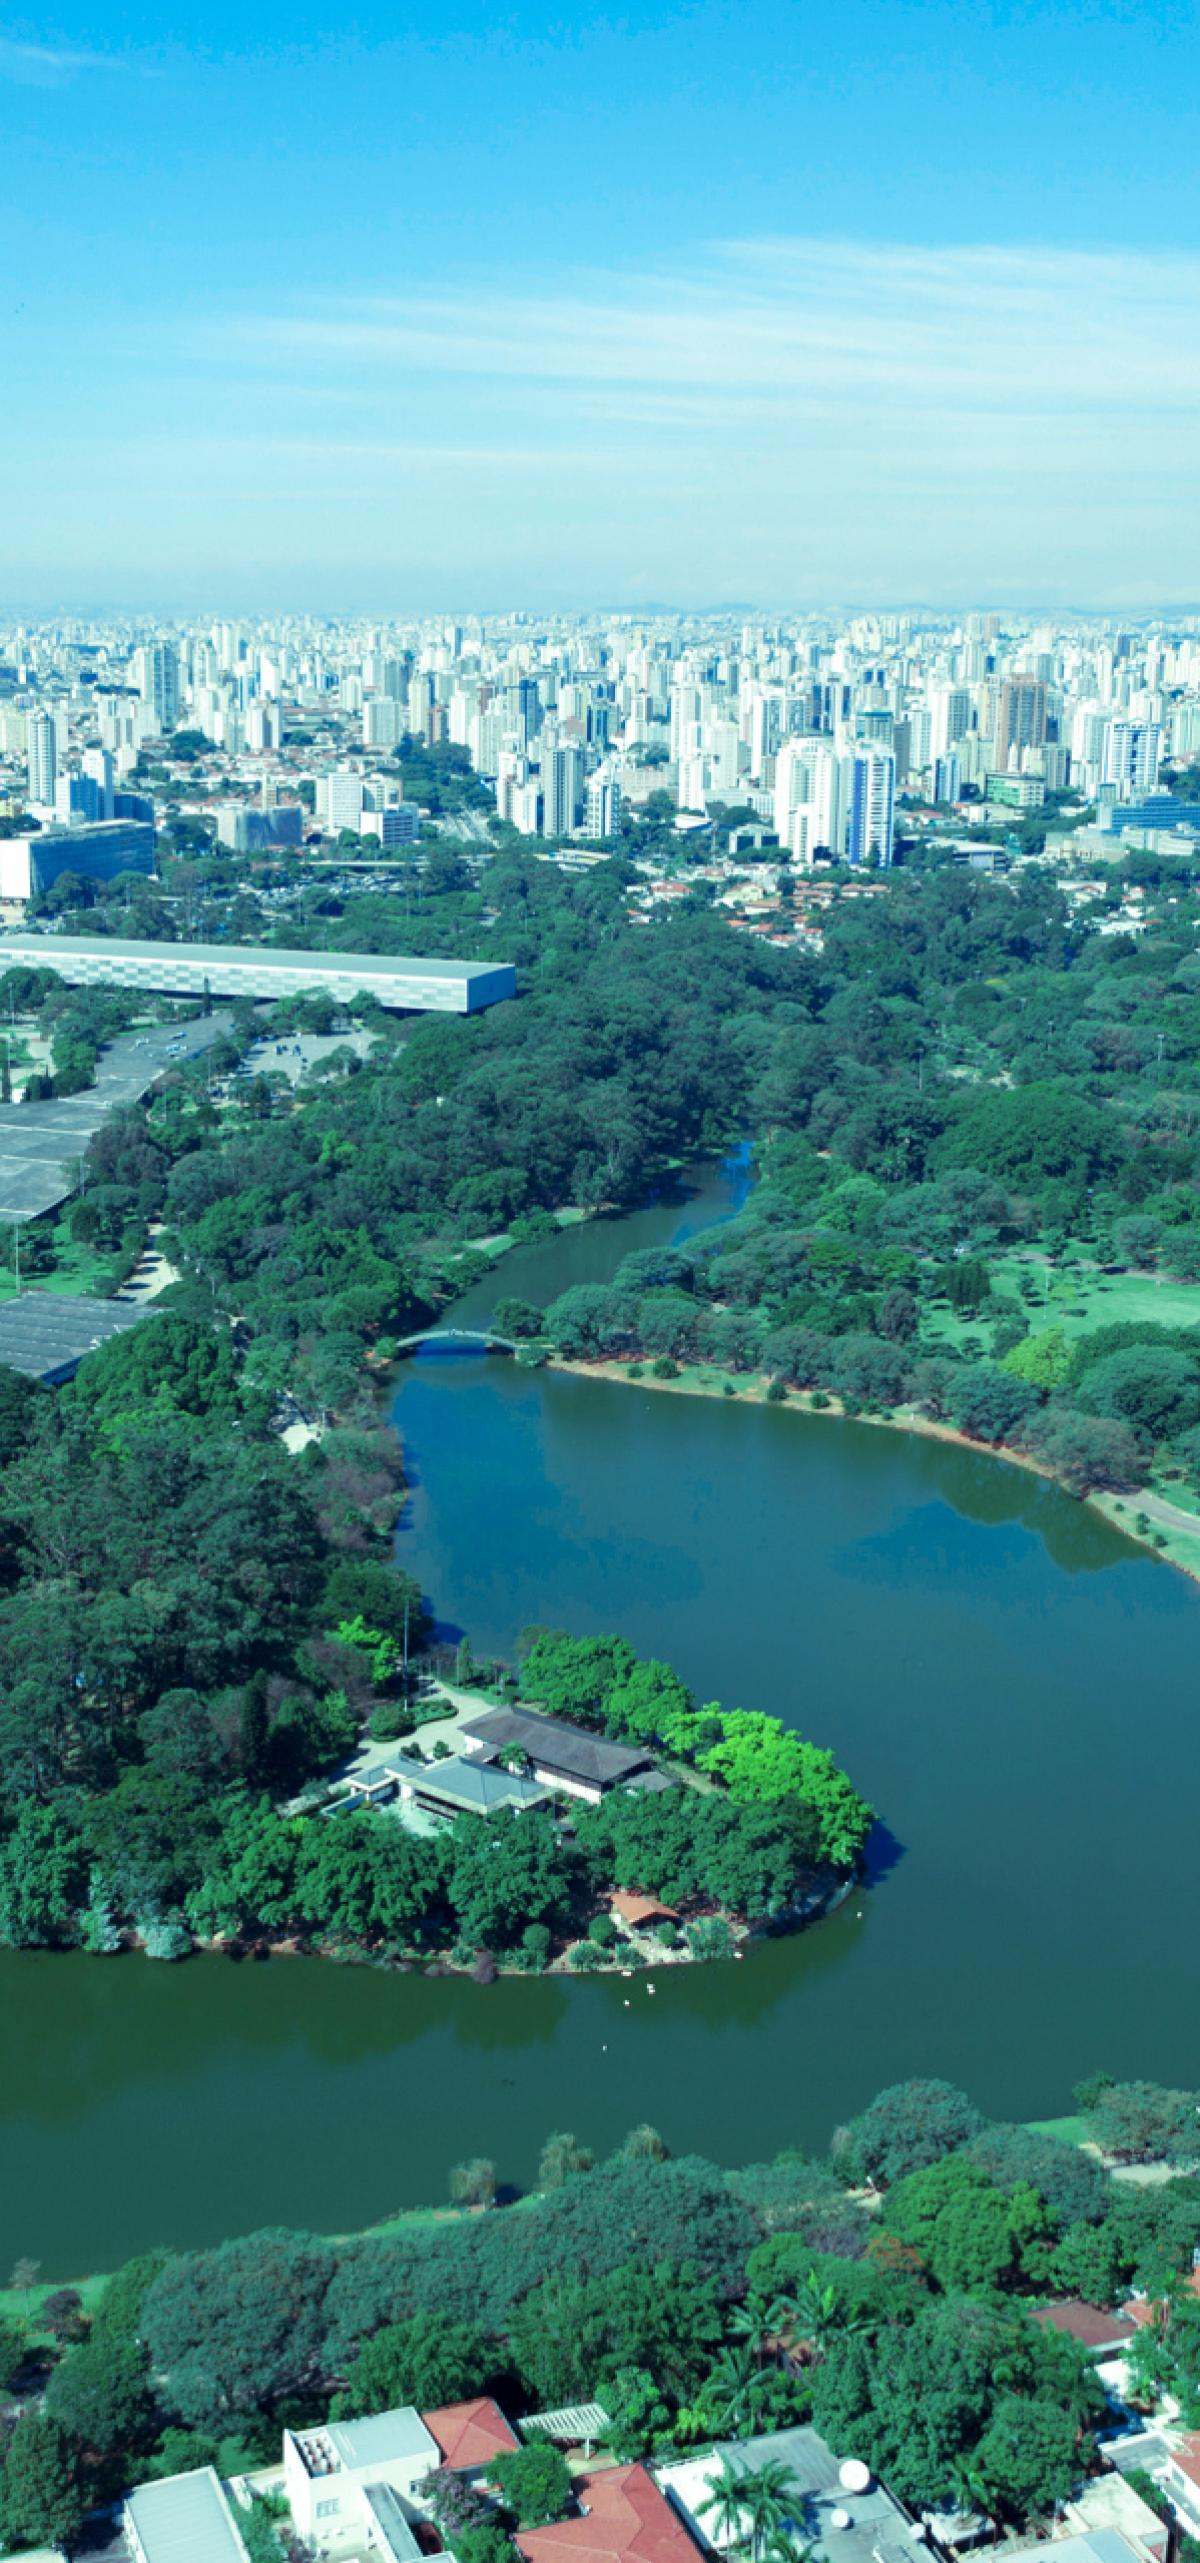 Largest and oldest city park in São Paulo: Parque do Ibirapuera